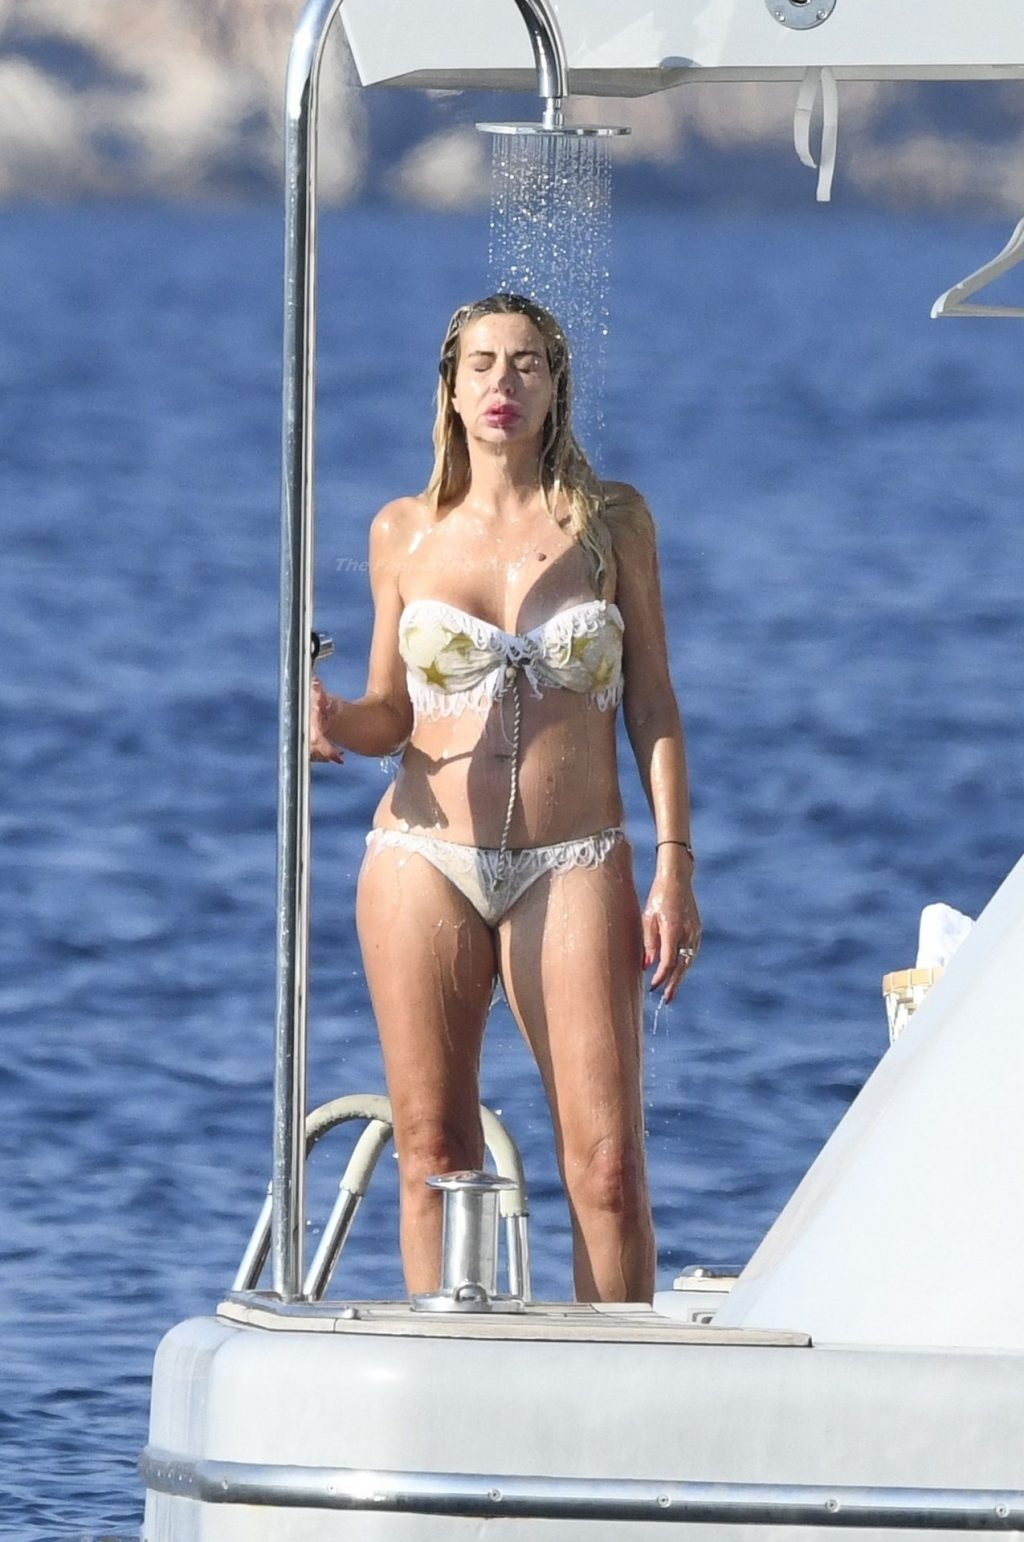 Valeria Marini Shows Off Her Nude Boobs and Butt on Holiday in Sardinia (84 Photos)